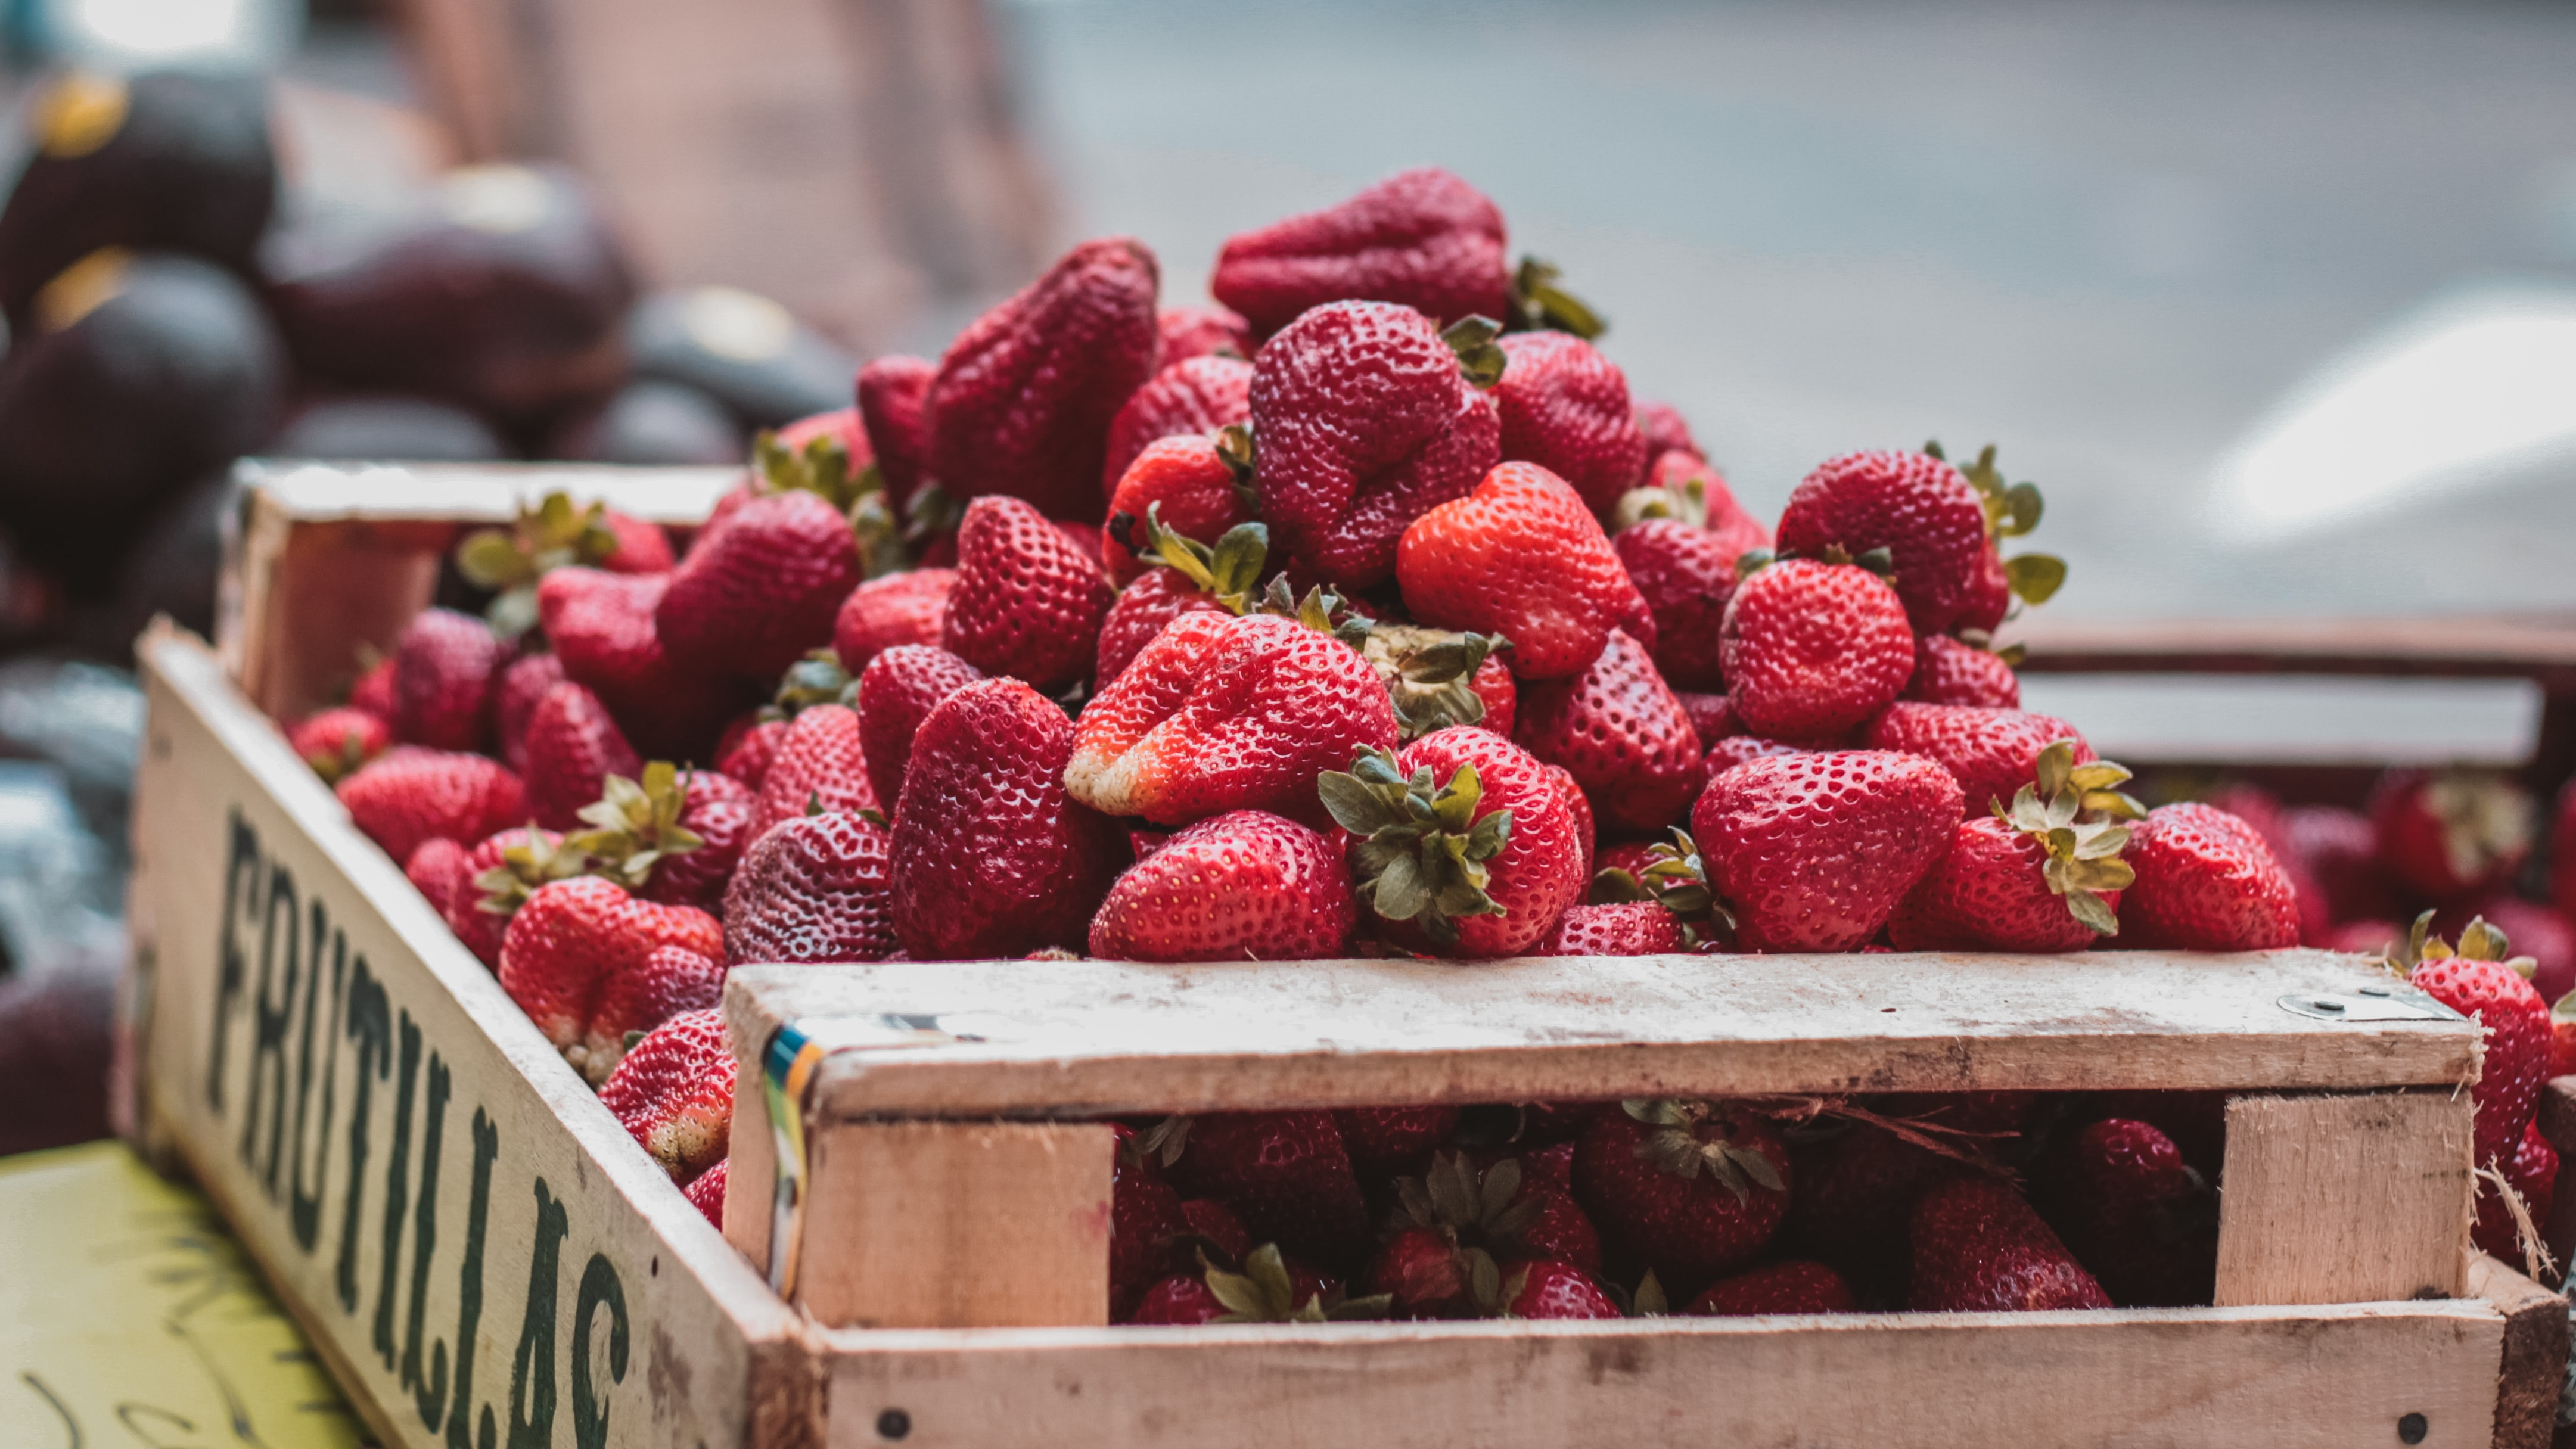 Crate overflowing with fresh red strawberries at the market